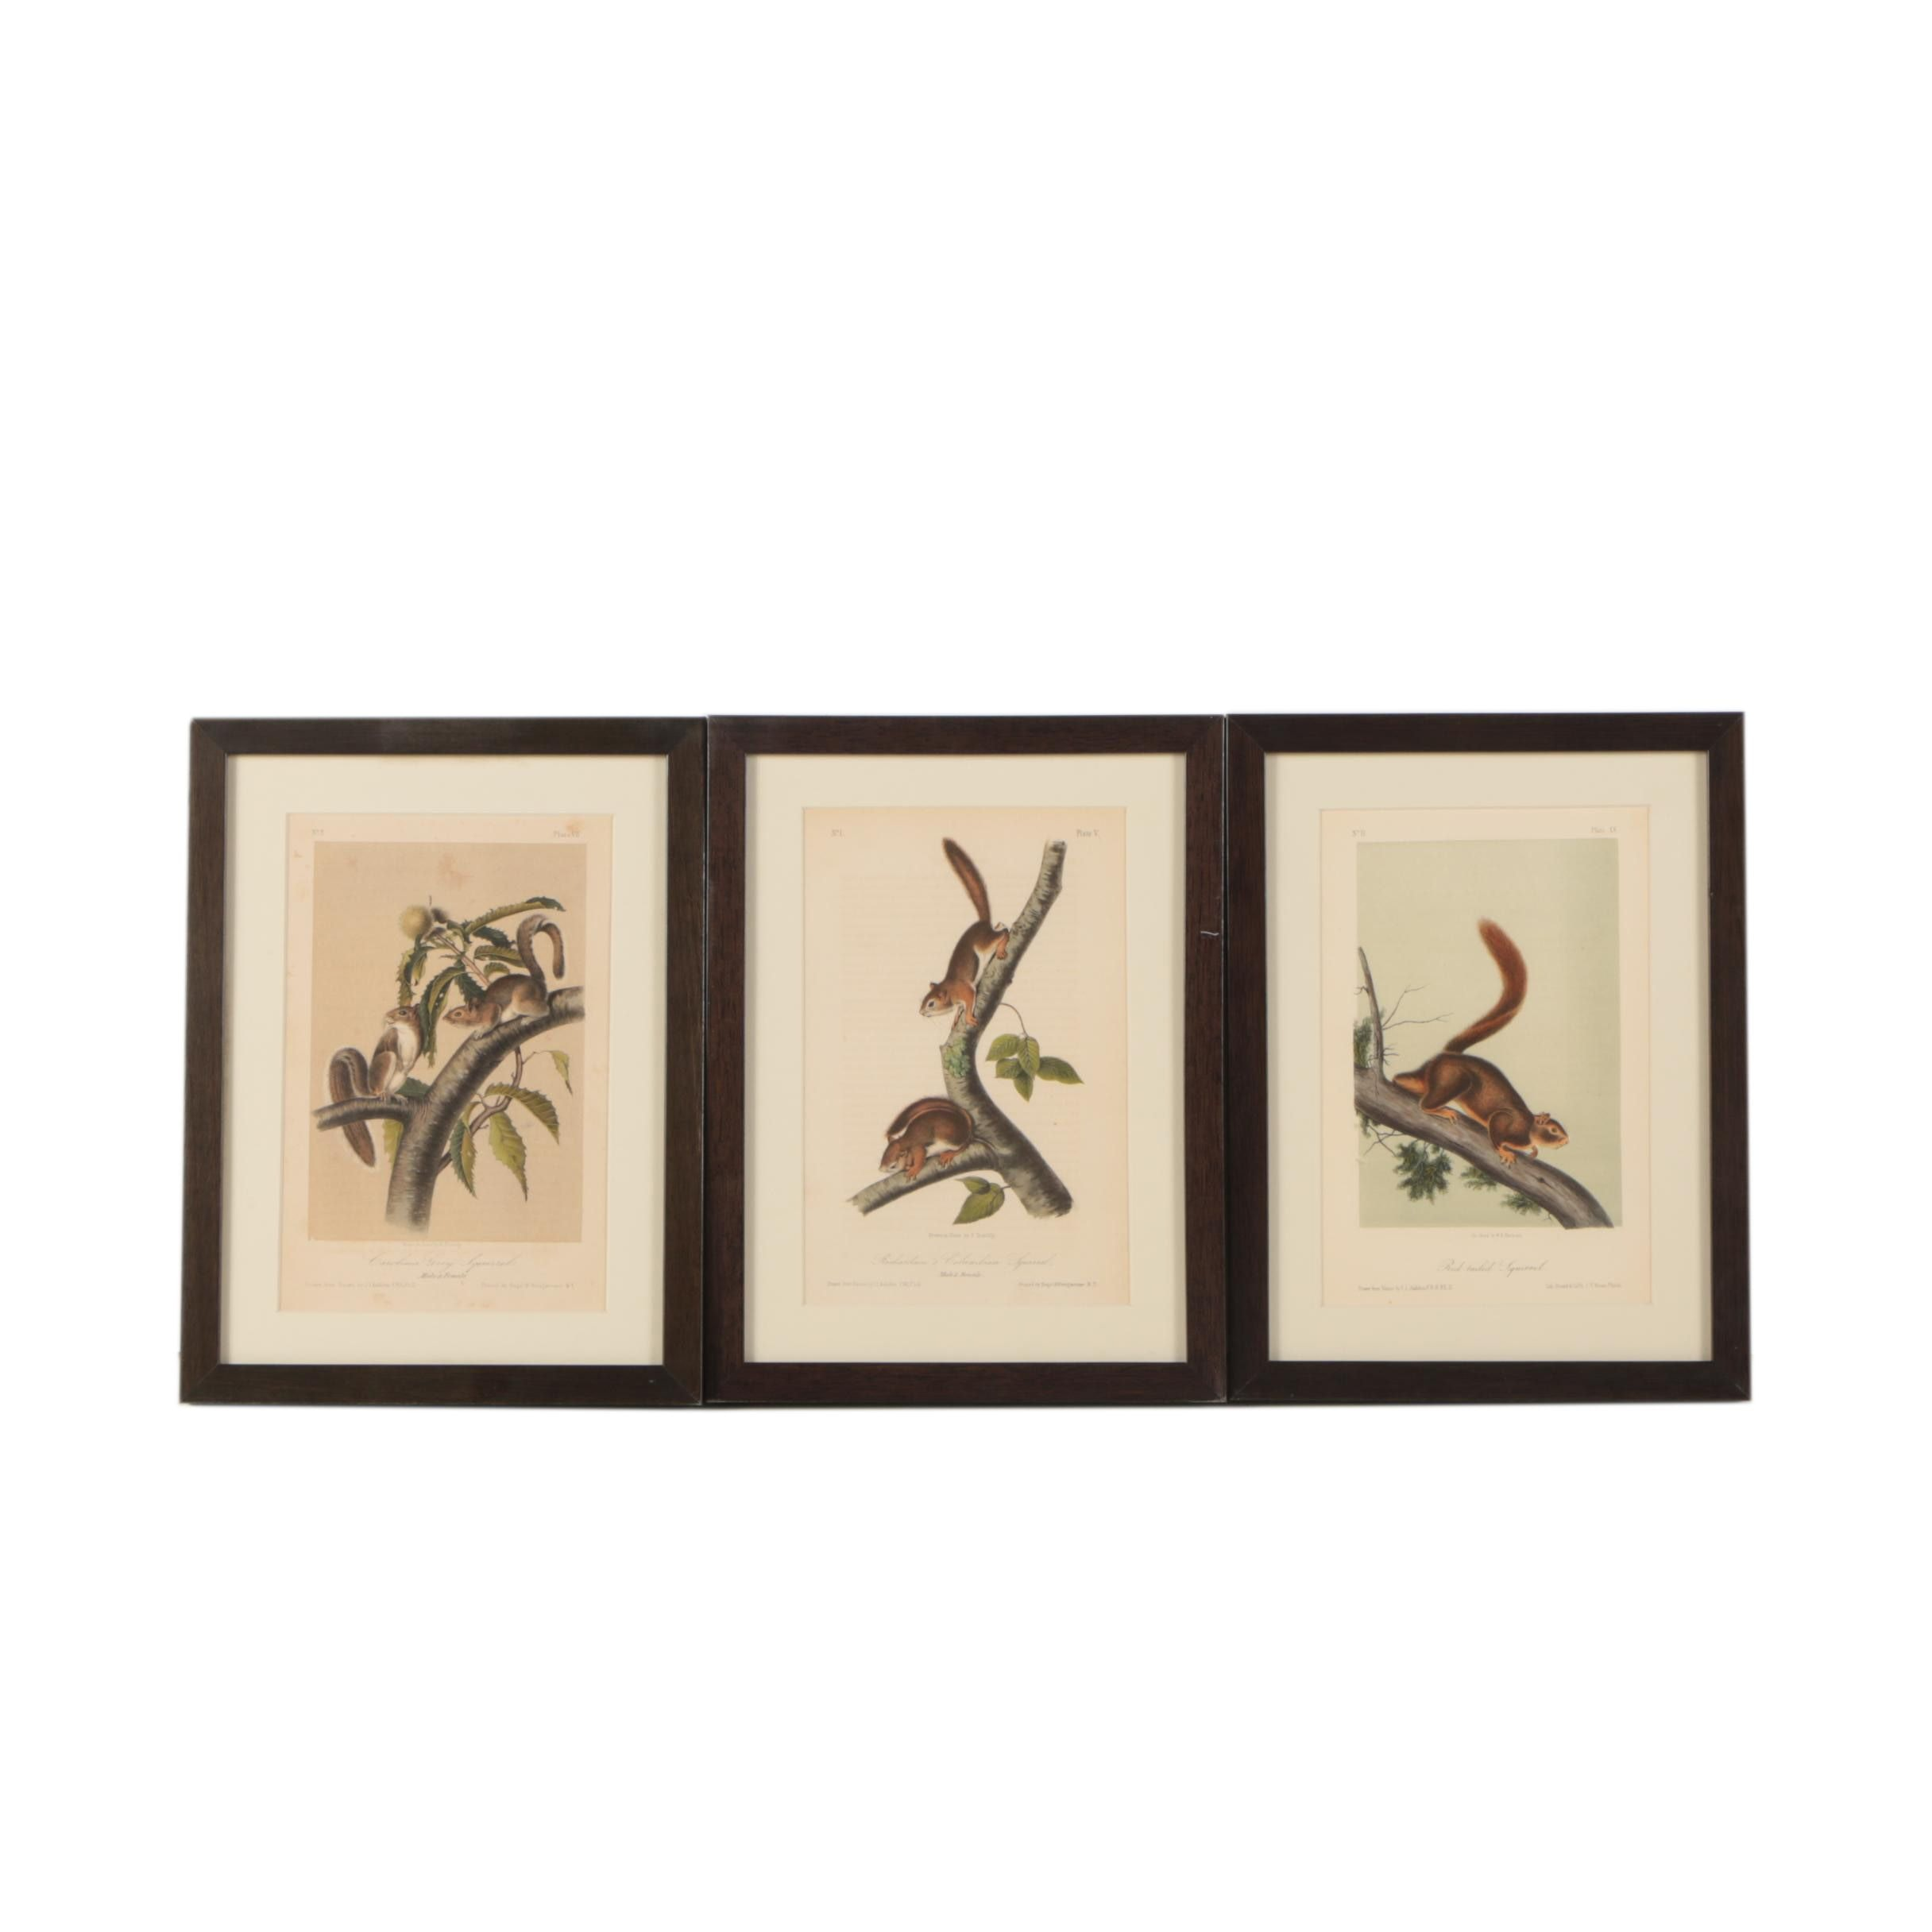 Three Color Lithographs